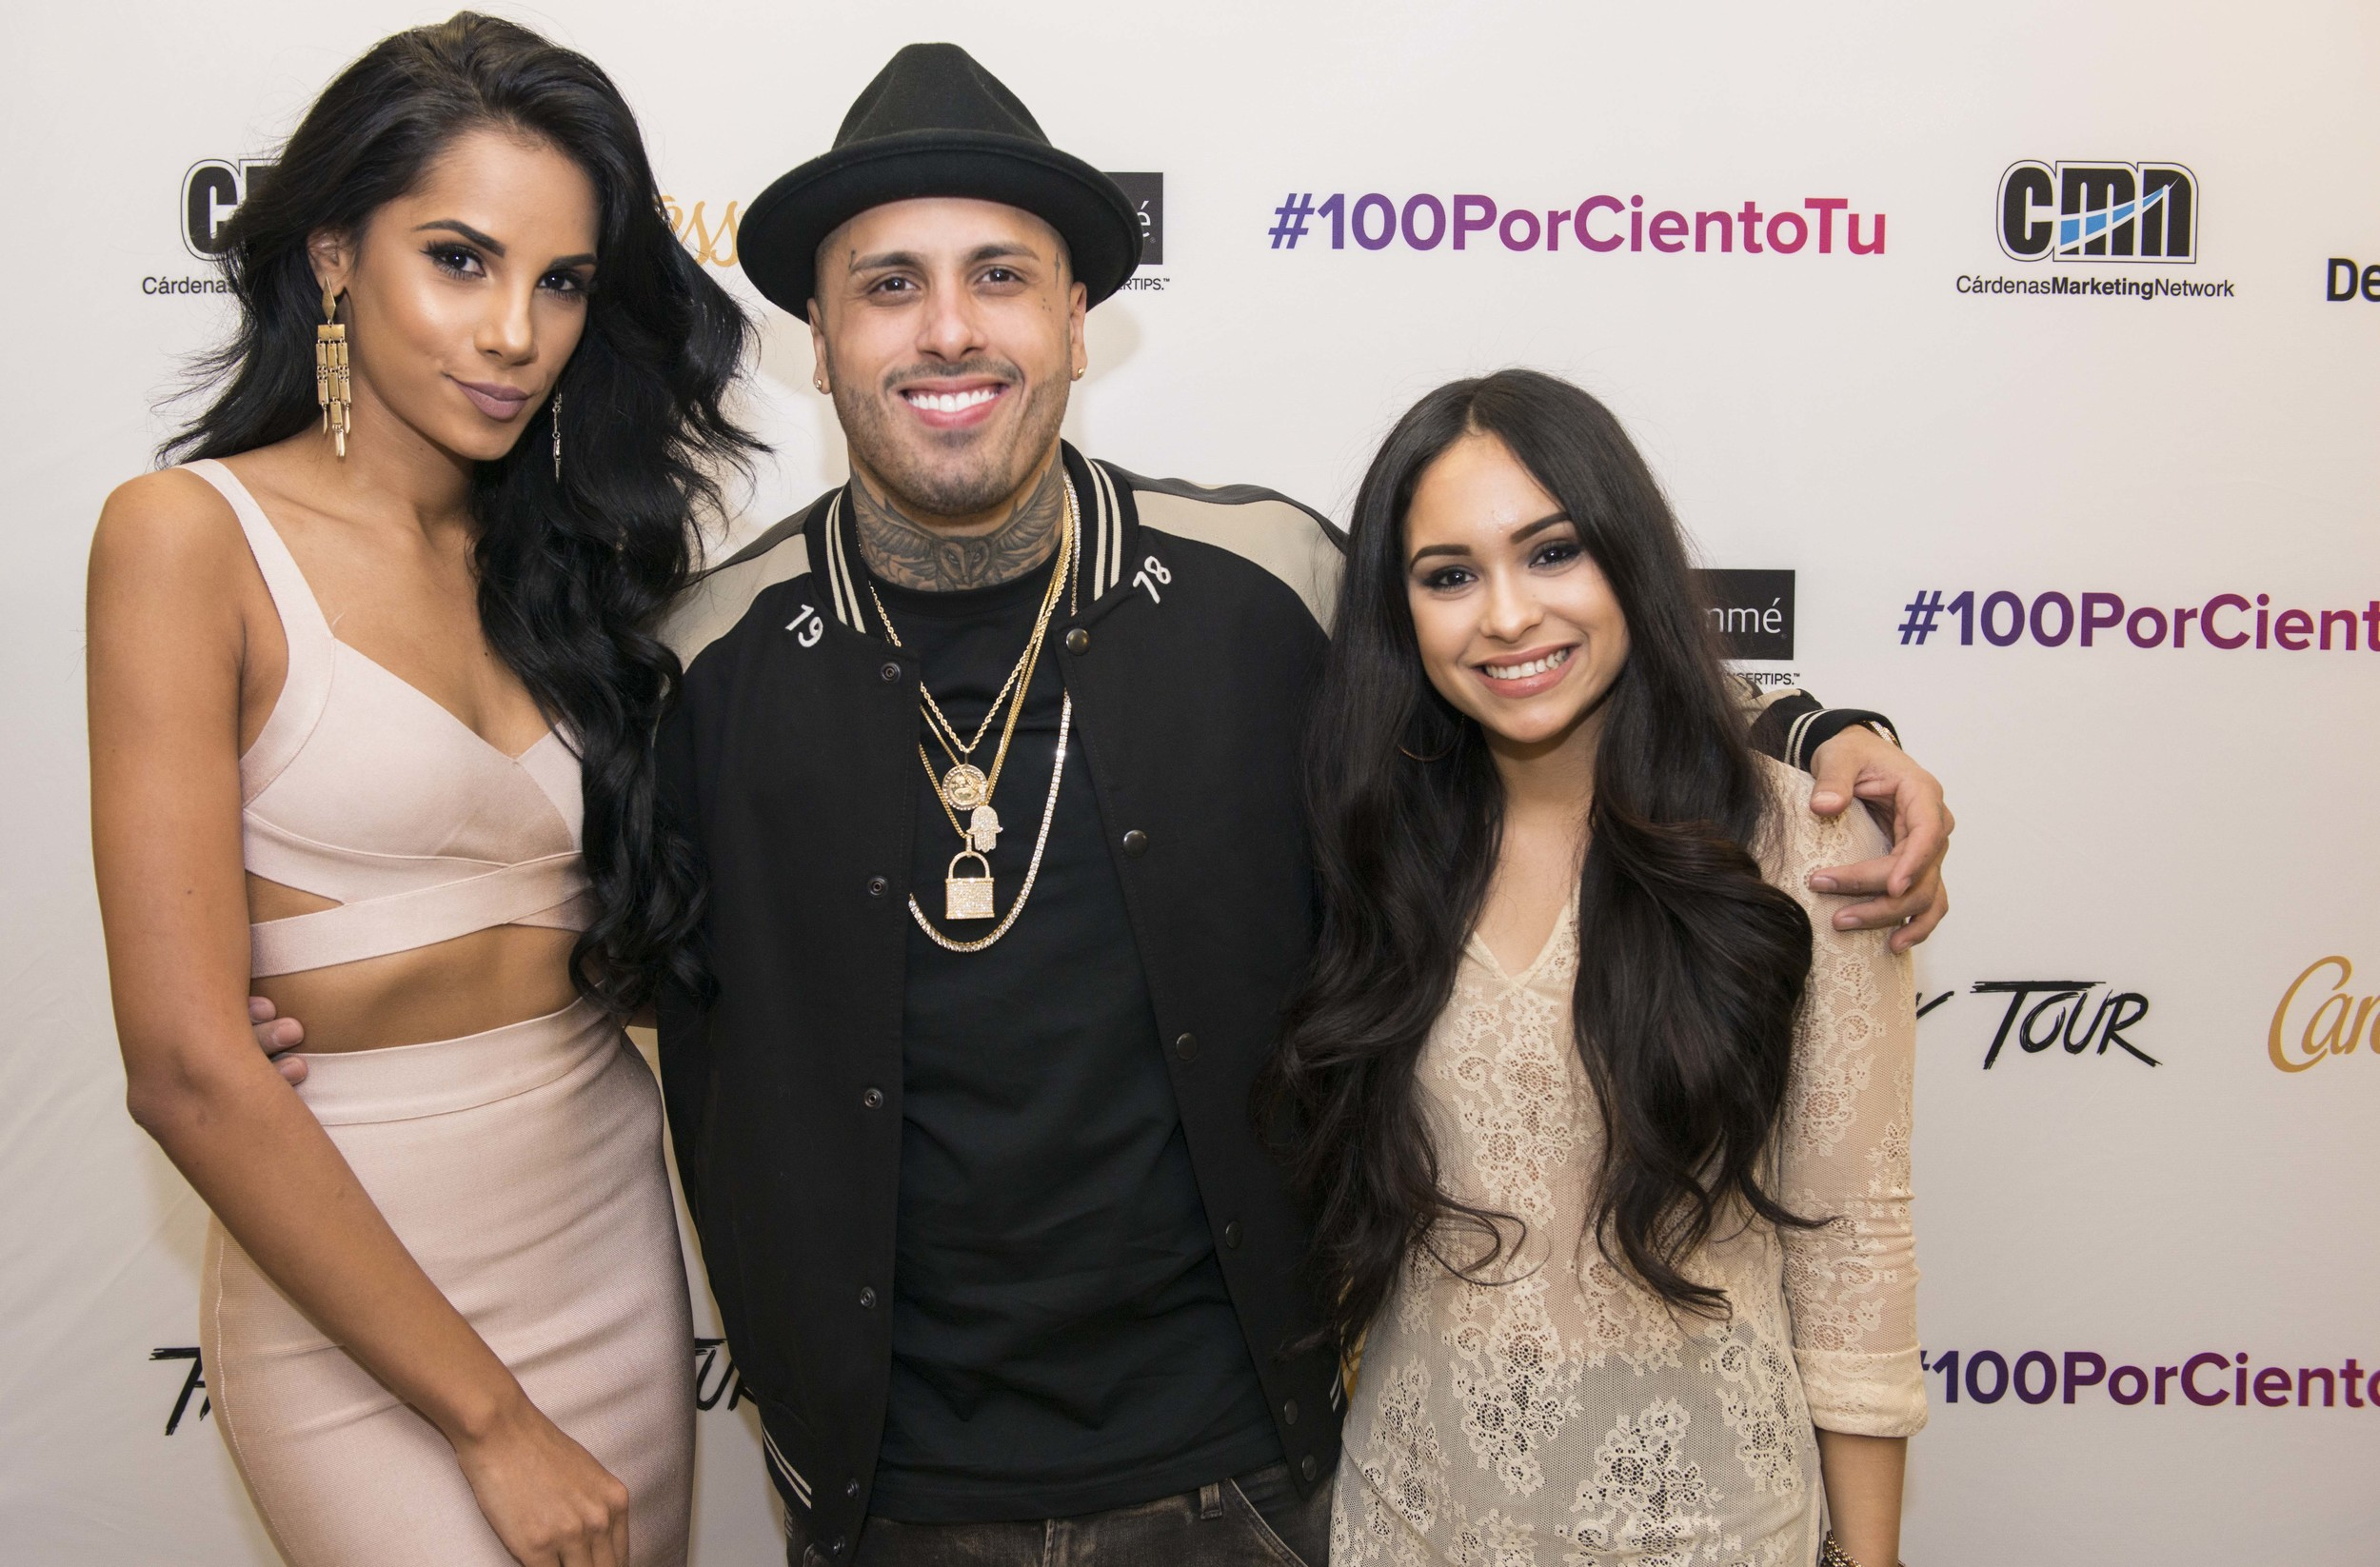 #100PorCientoTu Lauch Event in NYC with Nicky Jam